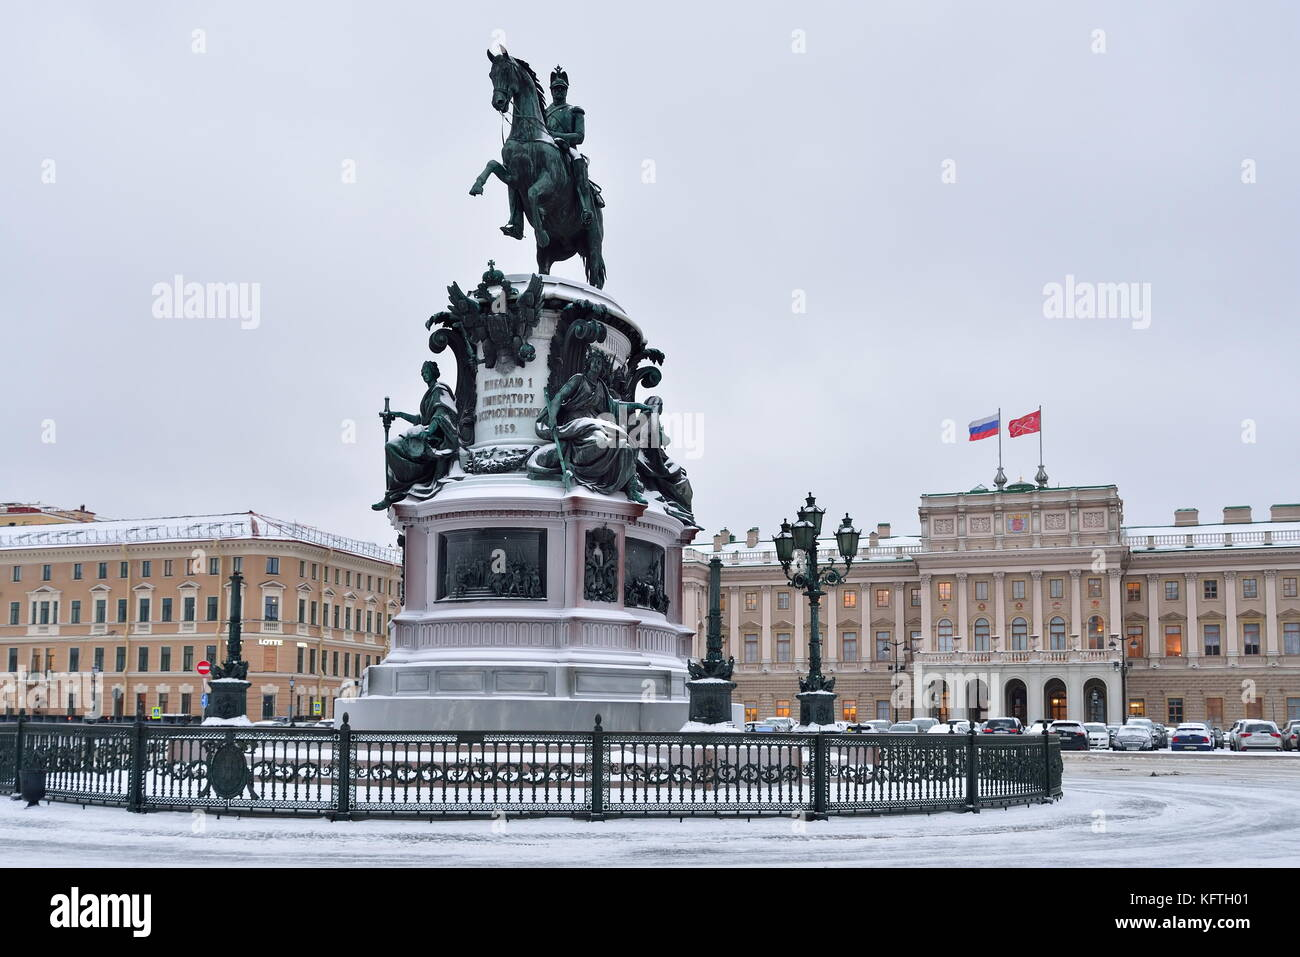 SAINT PETERSBURG, RUSSIA - 12 JANUARY 2017: Monument to Nicholas 1 St. Isaac's square in winter - Stock Image